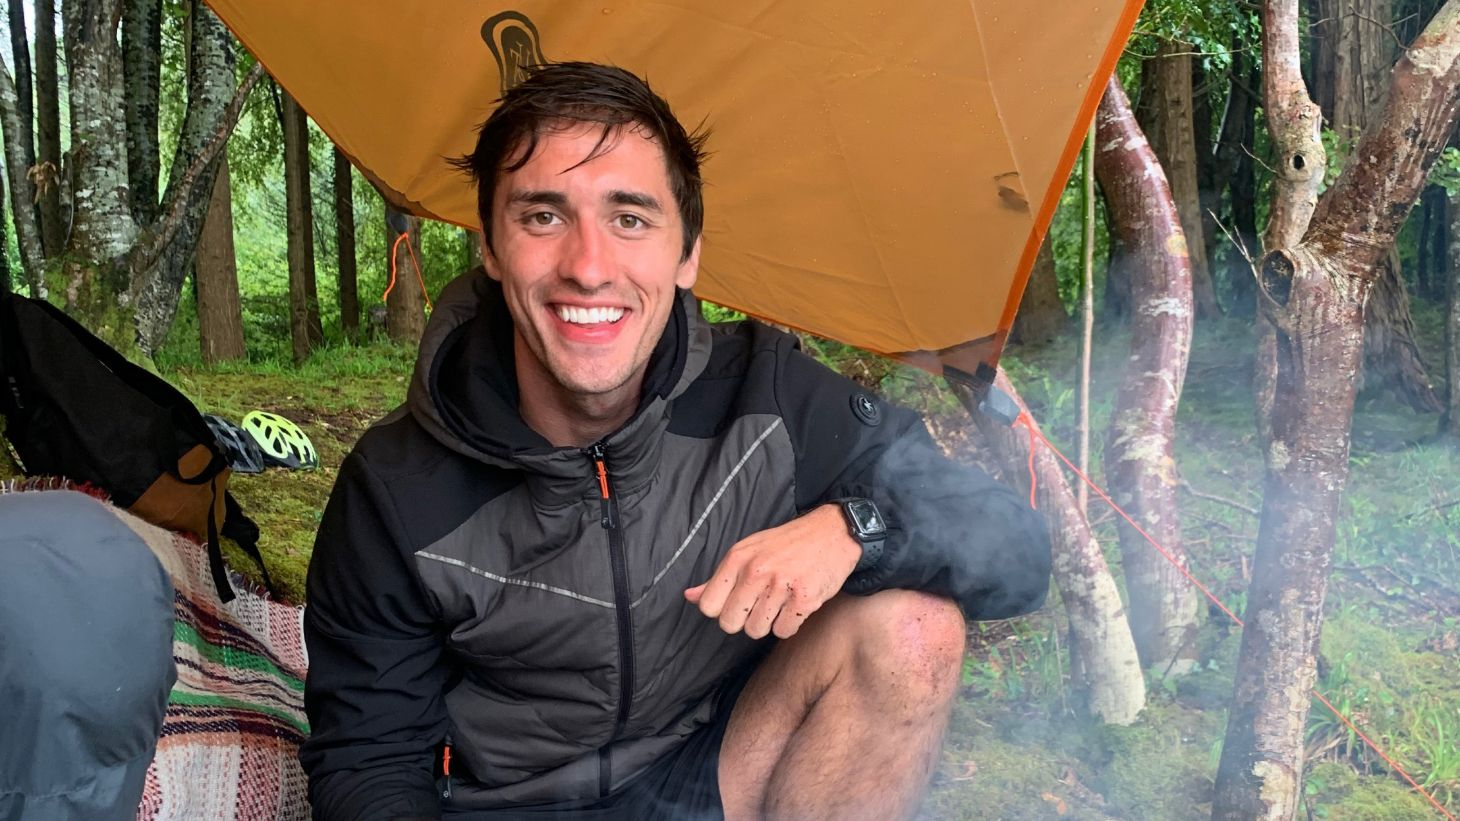 It was all smiles during Greg's outdoor activities with NW Adventures.